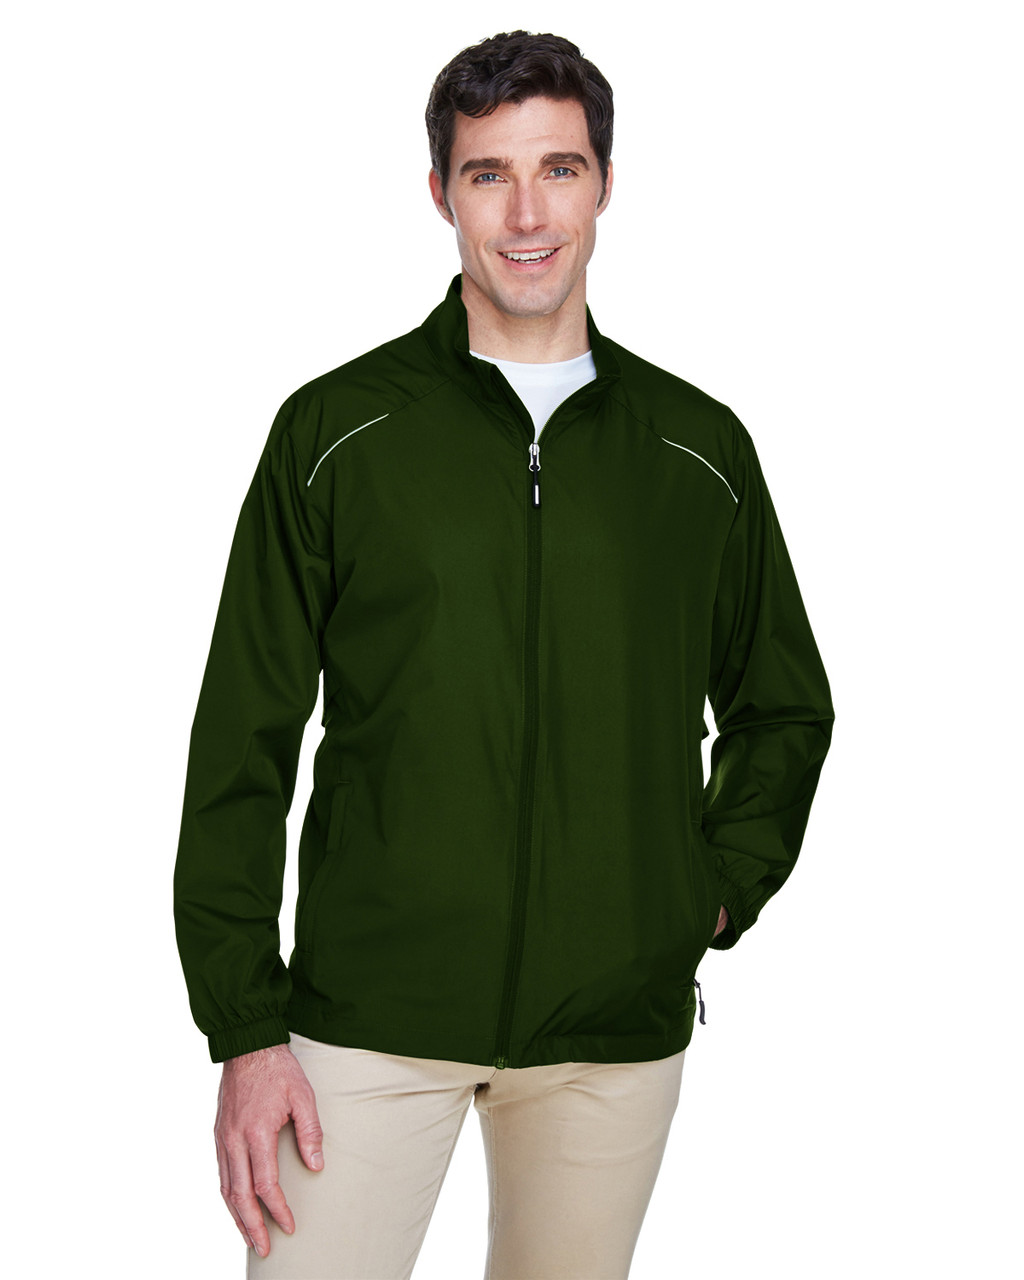 Forest Green - 88183 Ash City - Core 365 Motivate Unlined Lightweight Jacket | Blankclothing.ca